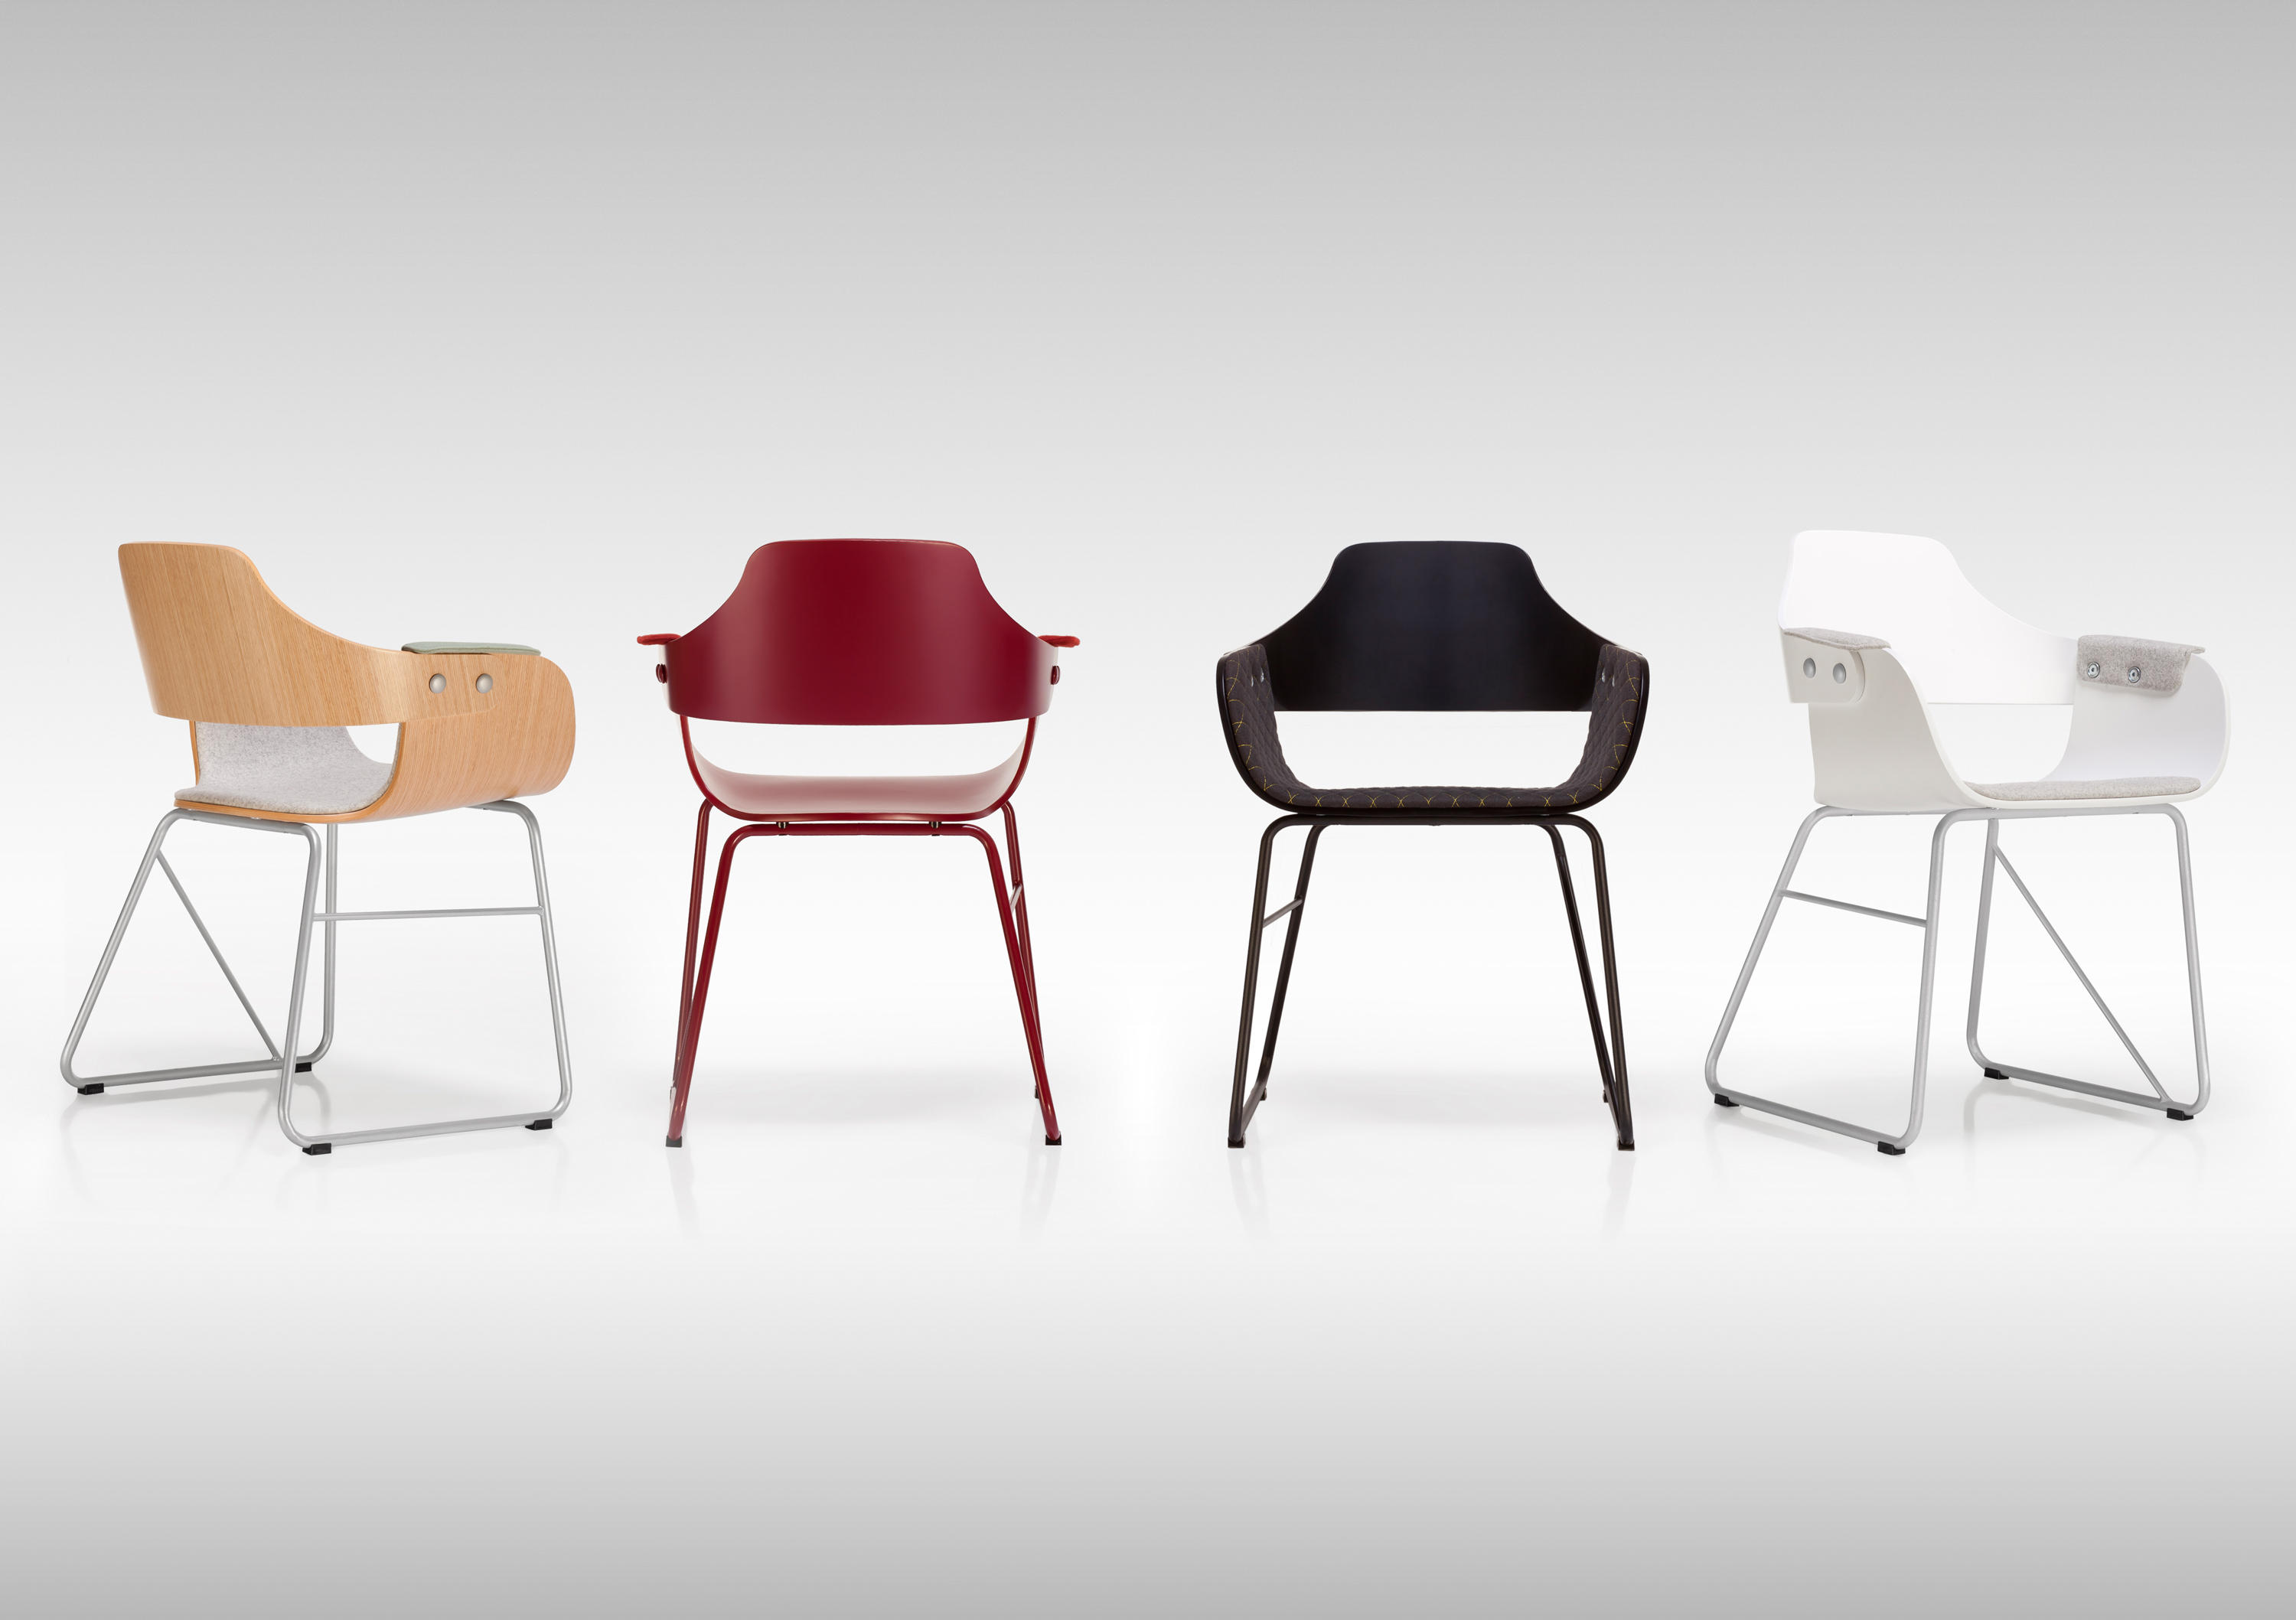 Wood Barcelona Chair Showtime Act Ii Chair Visitors Chairs Side Chairs From